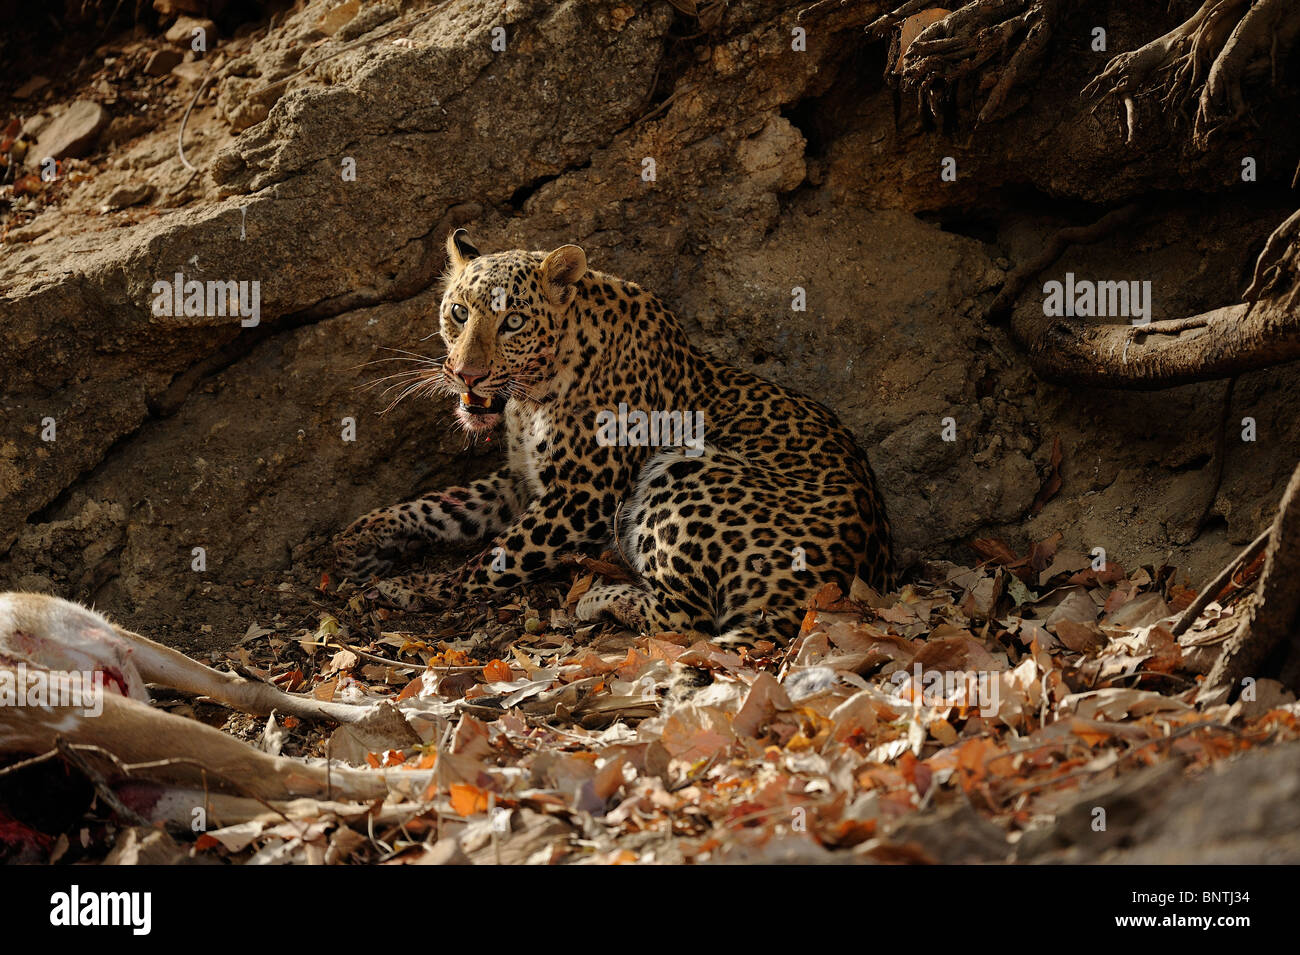 Leopard (Panthera pardus) resting after a kill, Ranthambhore, India. - Stock Image